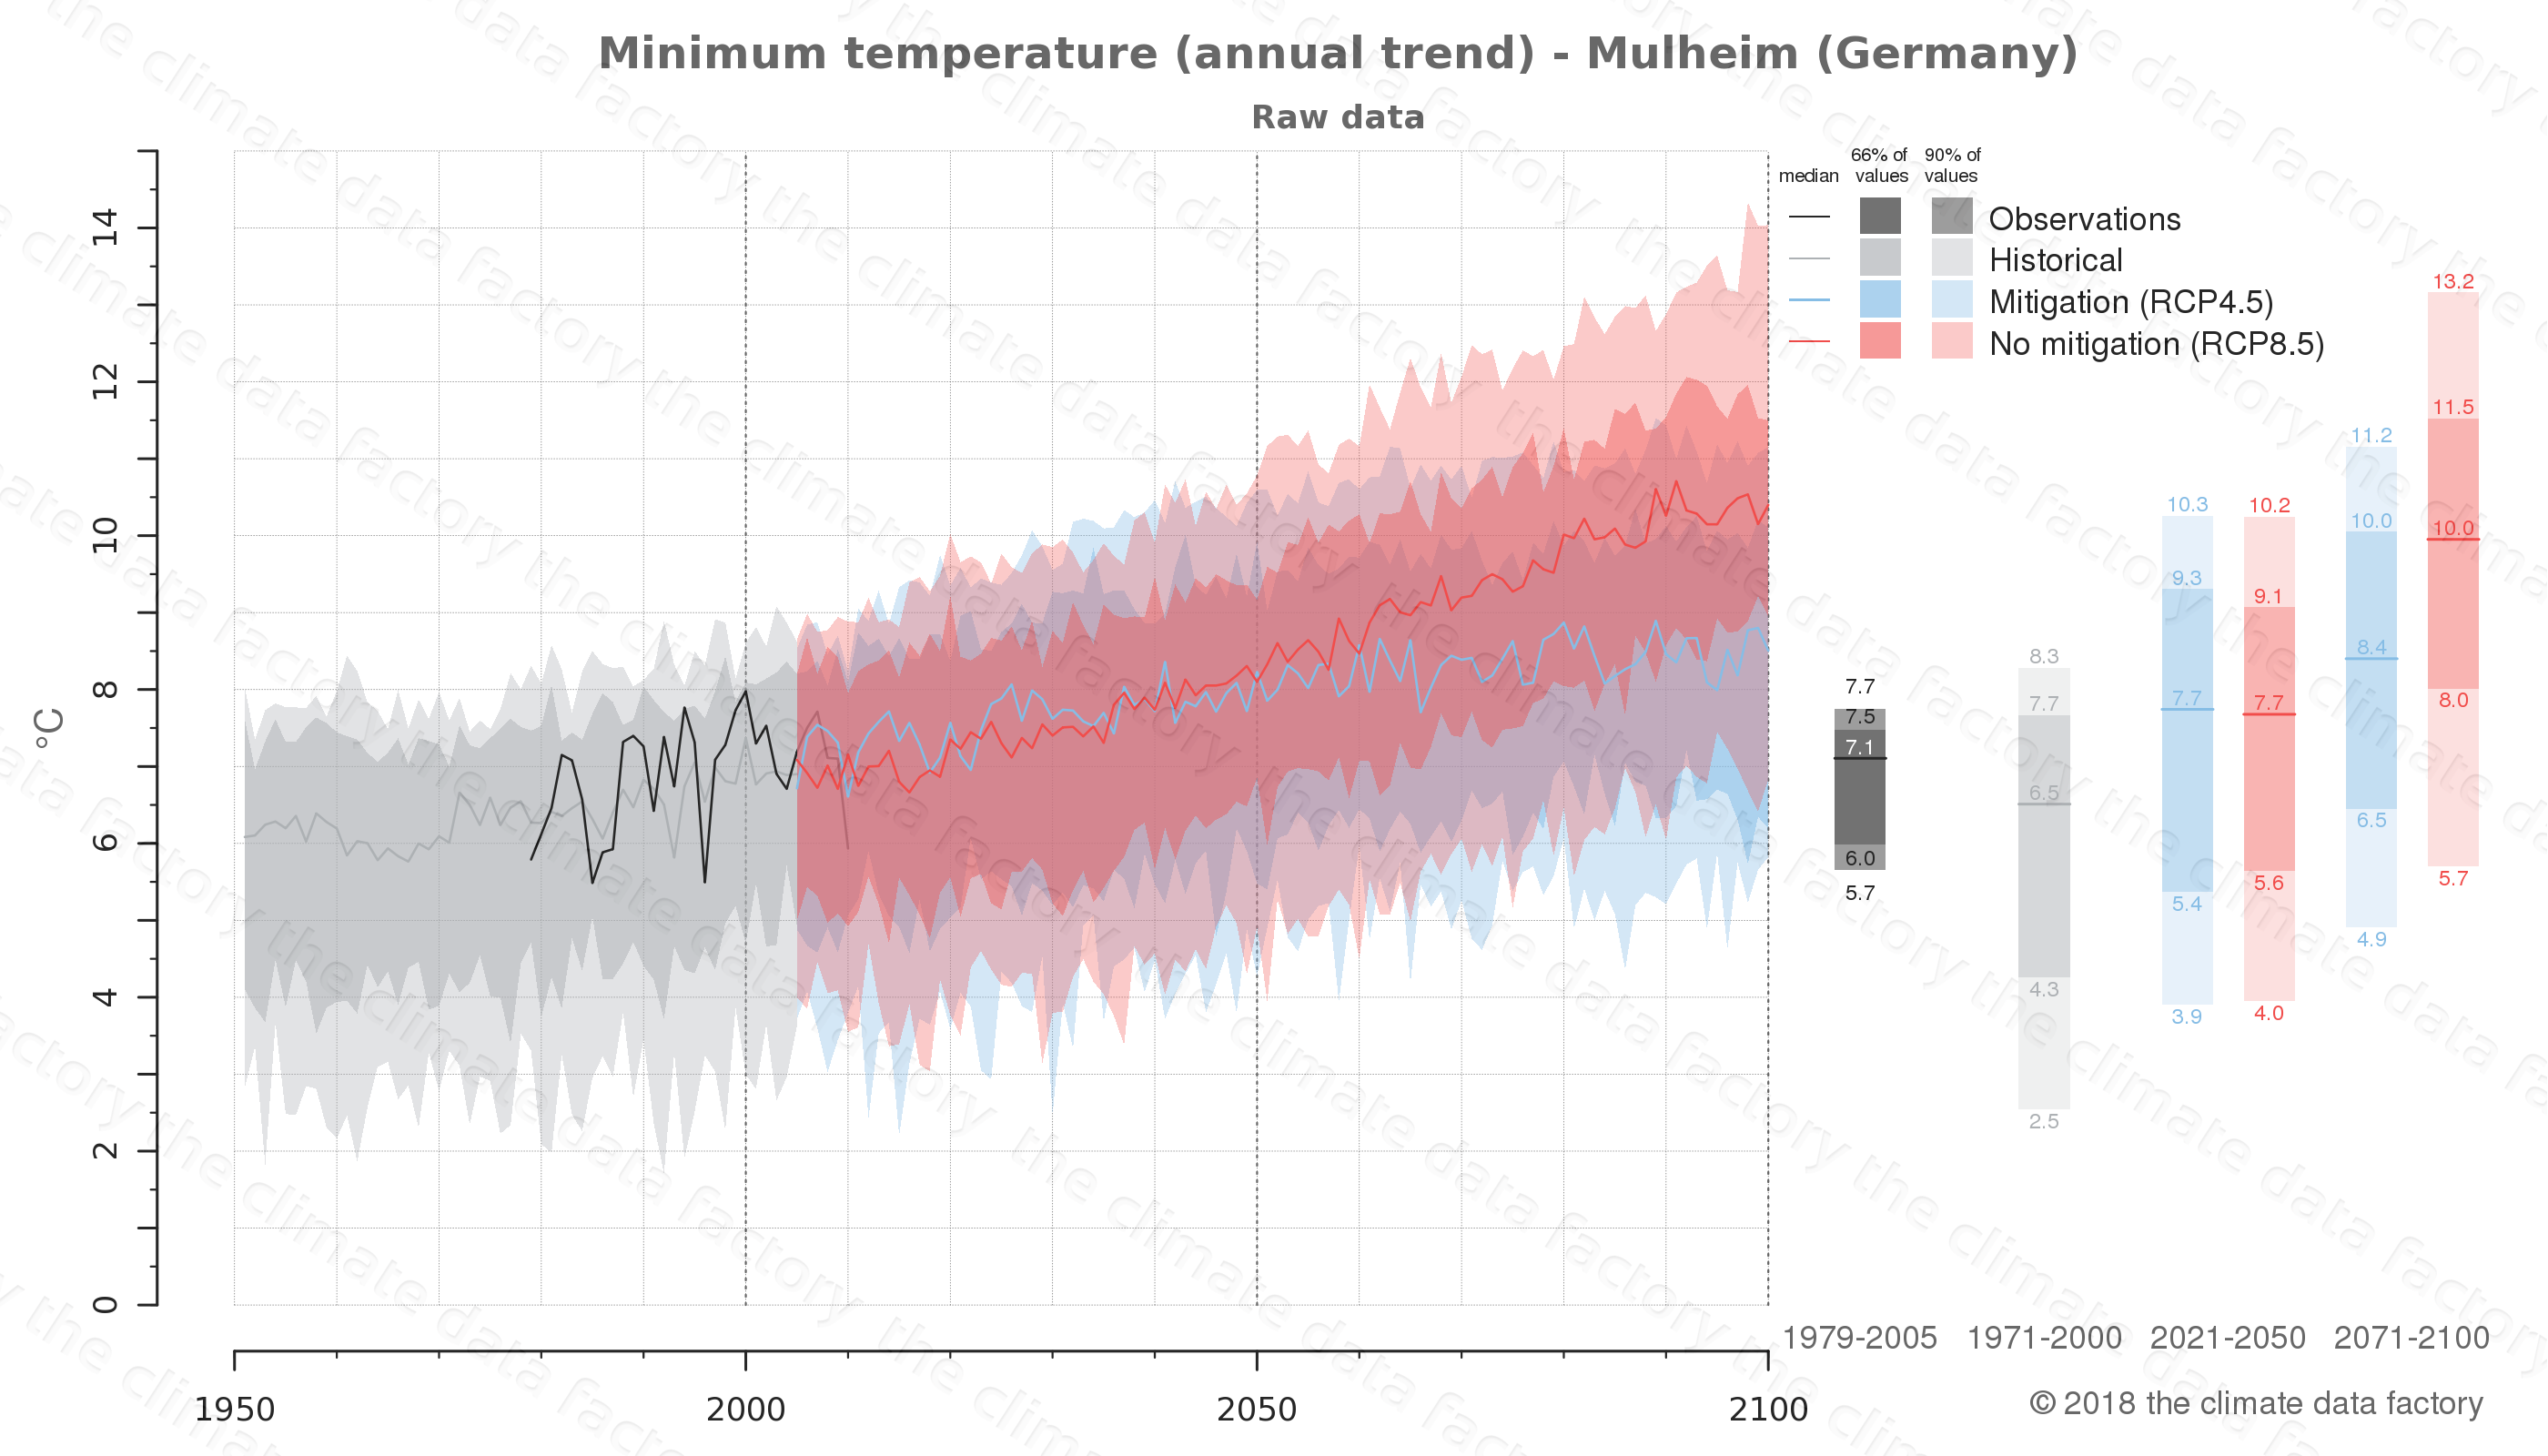 climate change data policy adaptation climate graph city data minimum-temperature mulheim germany